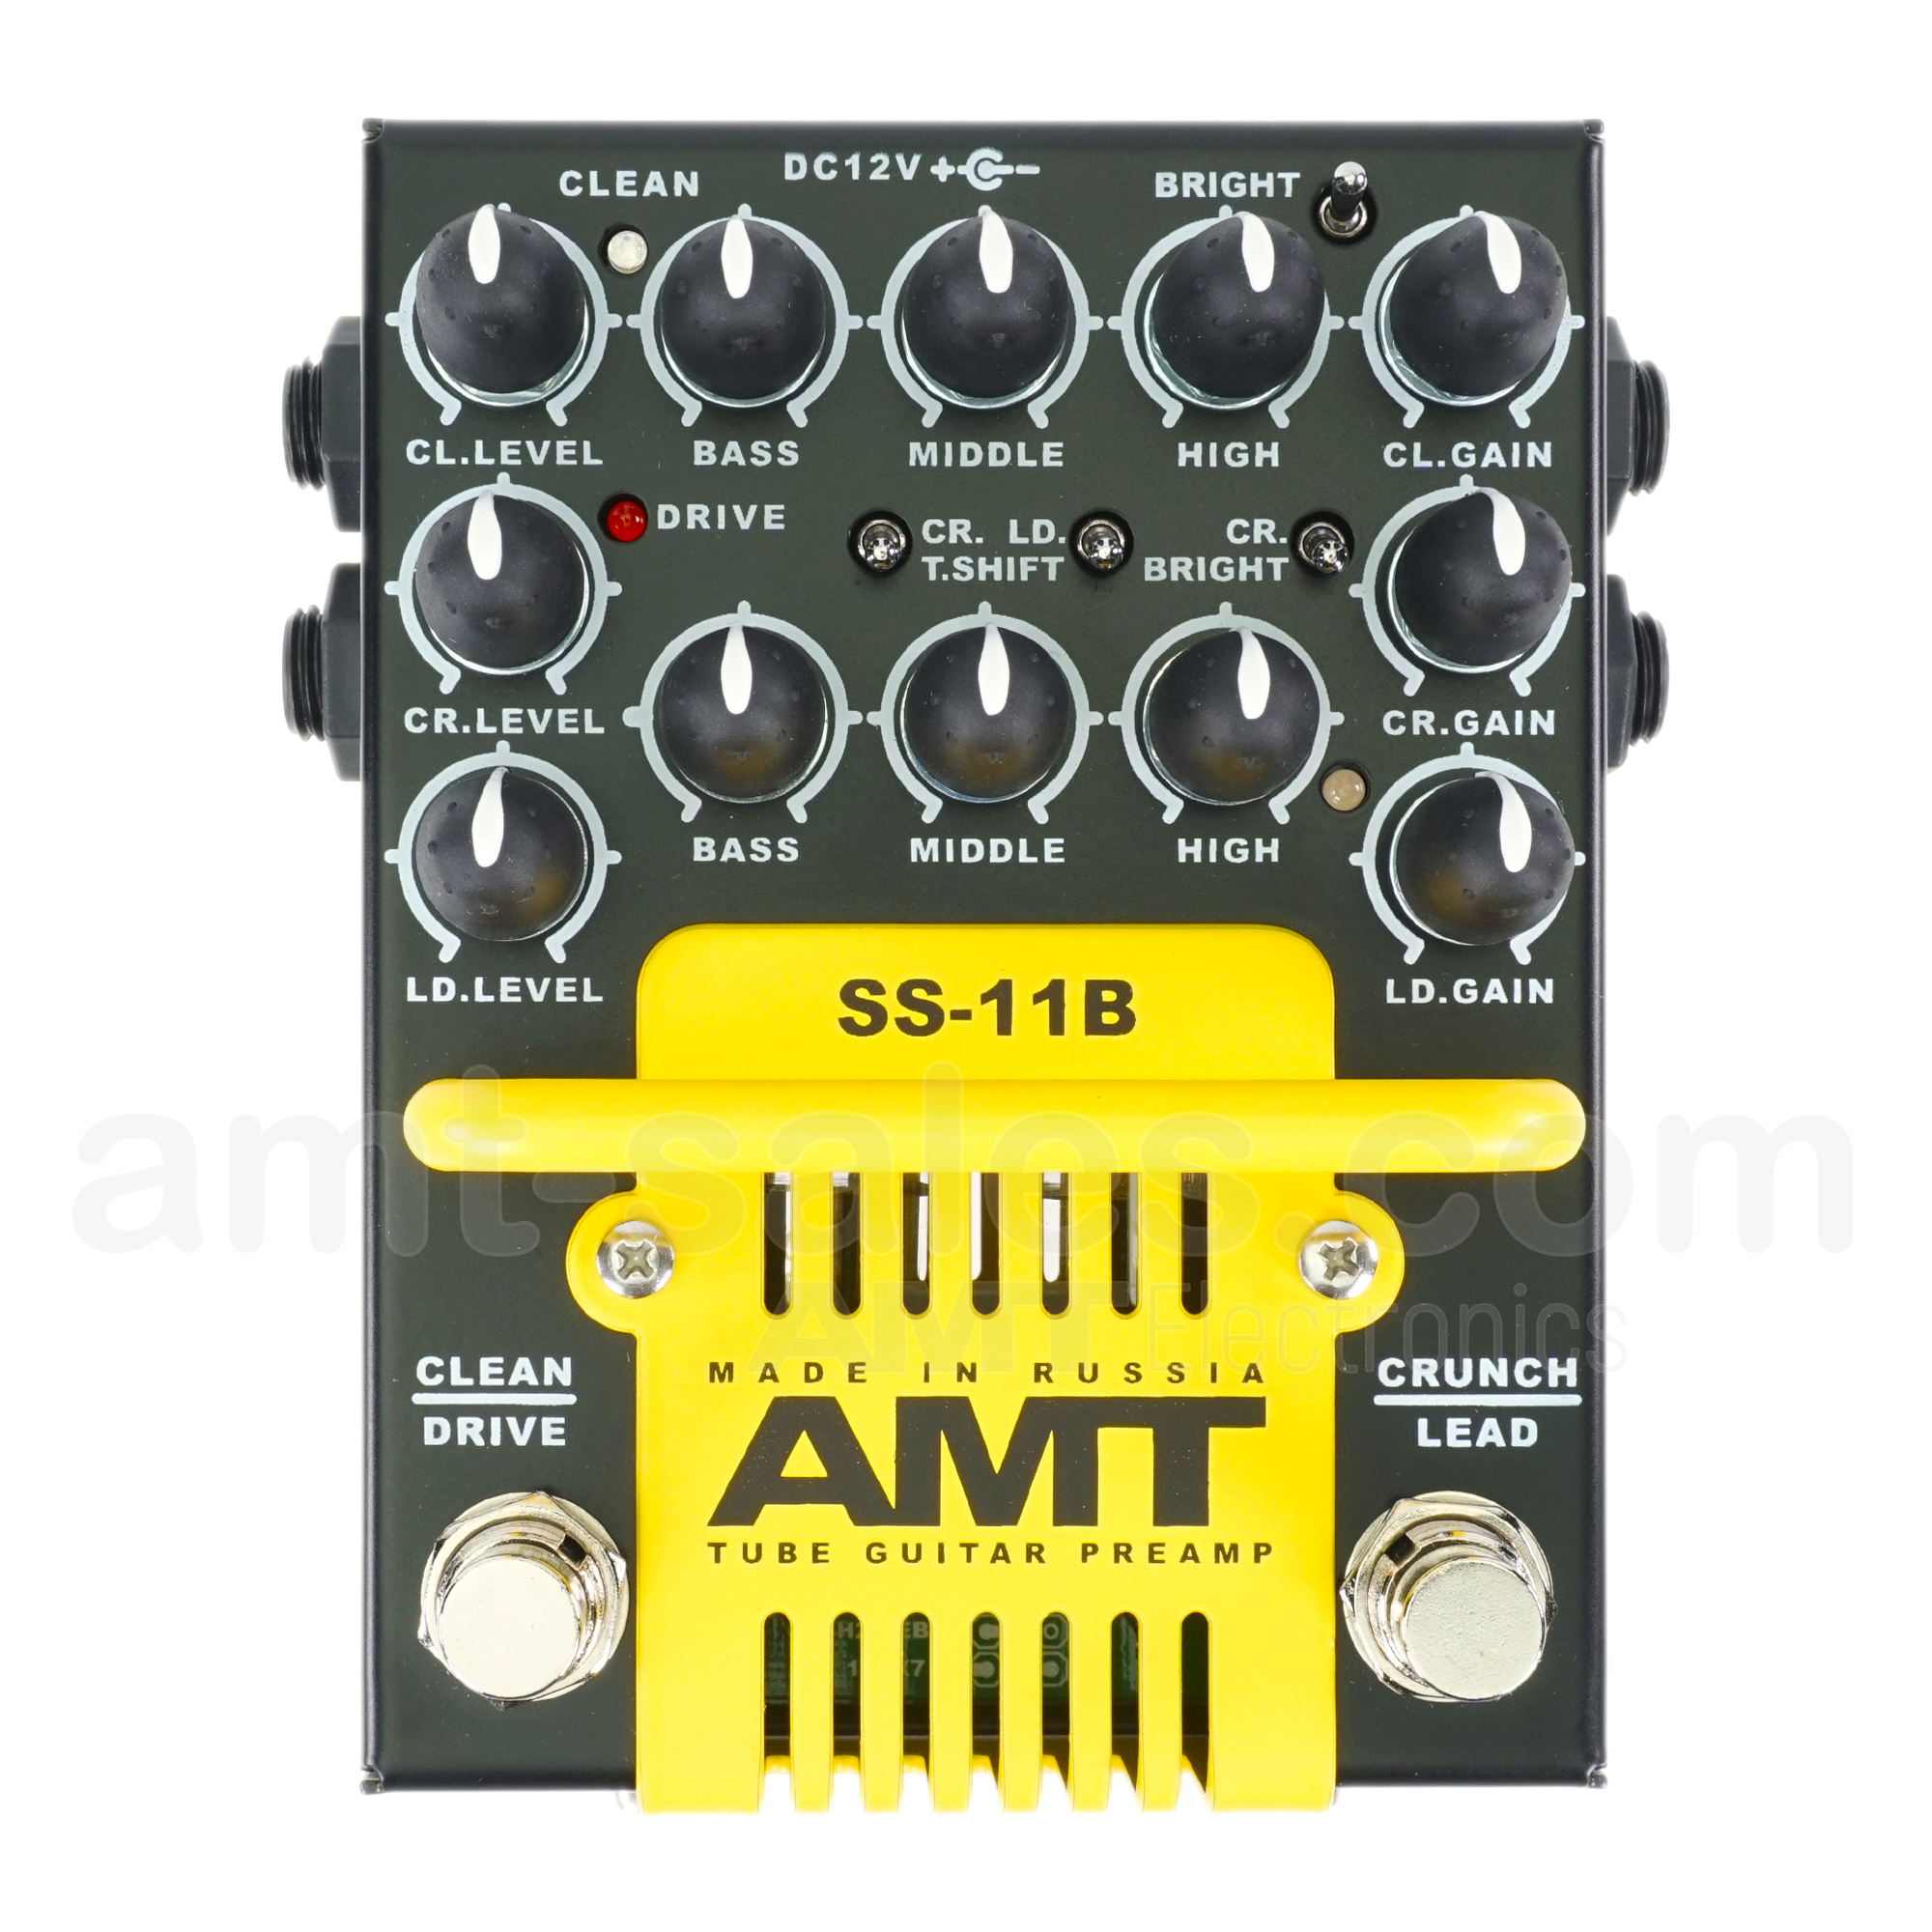 AMT SS-11B (Modern) - 3-channel Tube Guitar Preamp